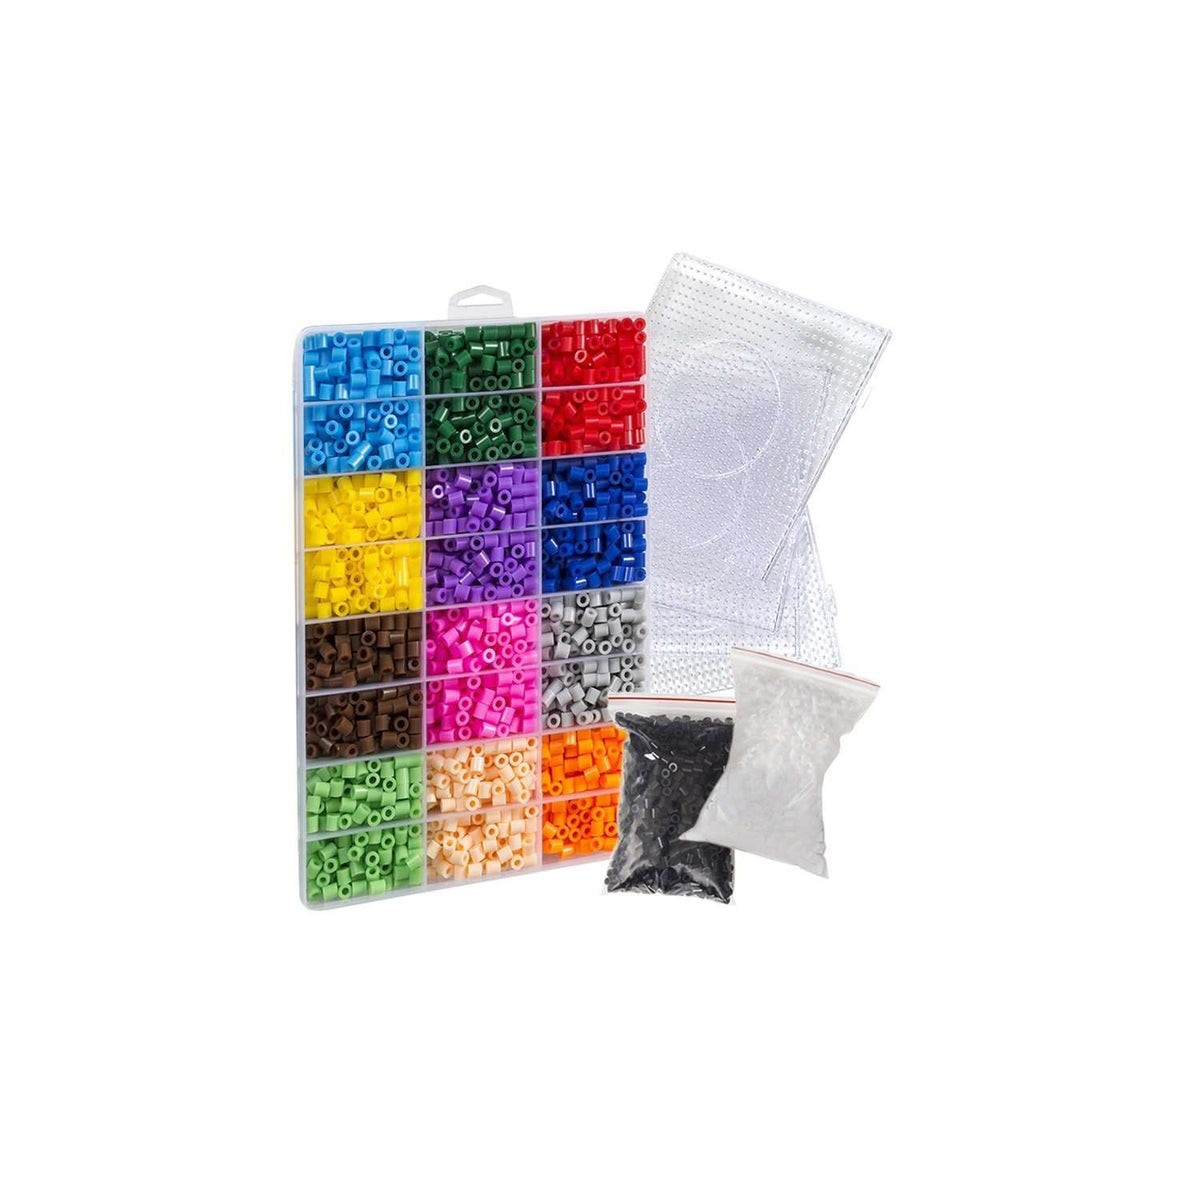 Pixel Art Fuse Bead Kit (Compatible with Perler) (6800 Beads) - EvoRetro Lets Game